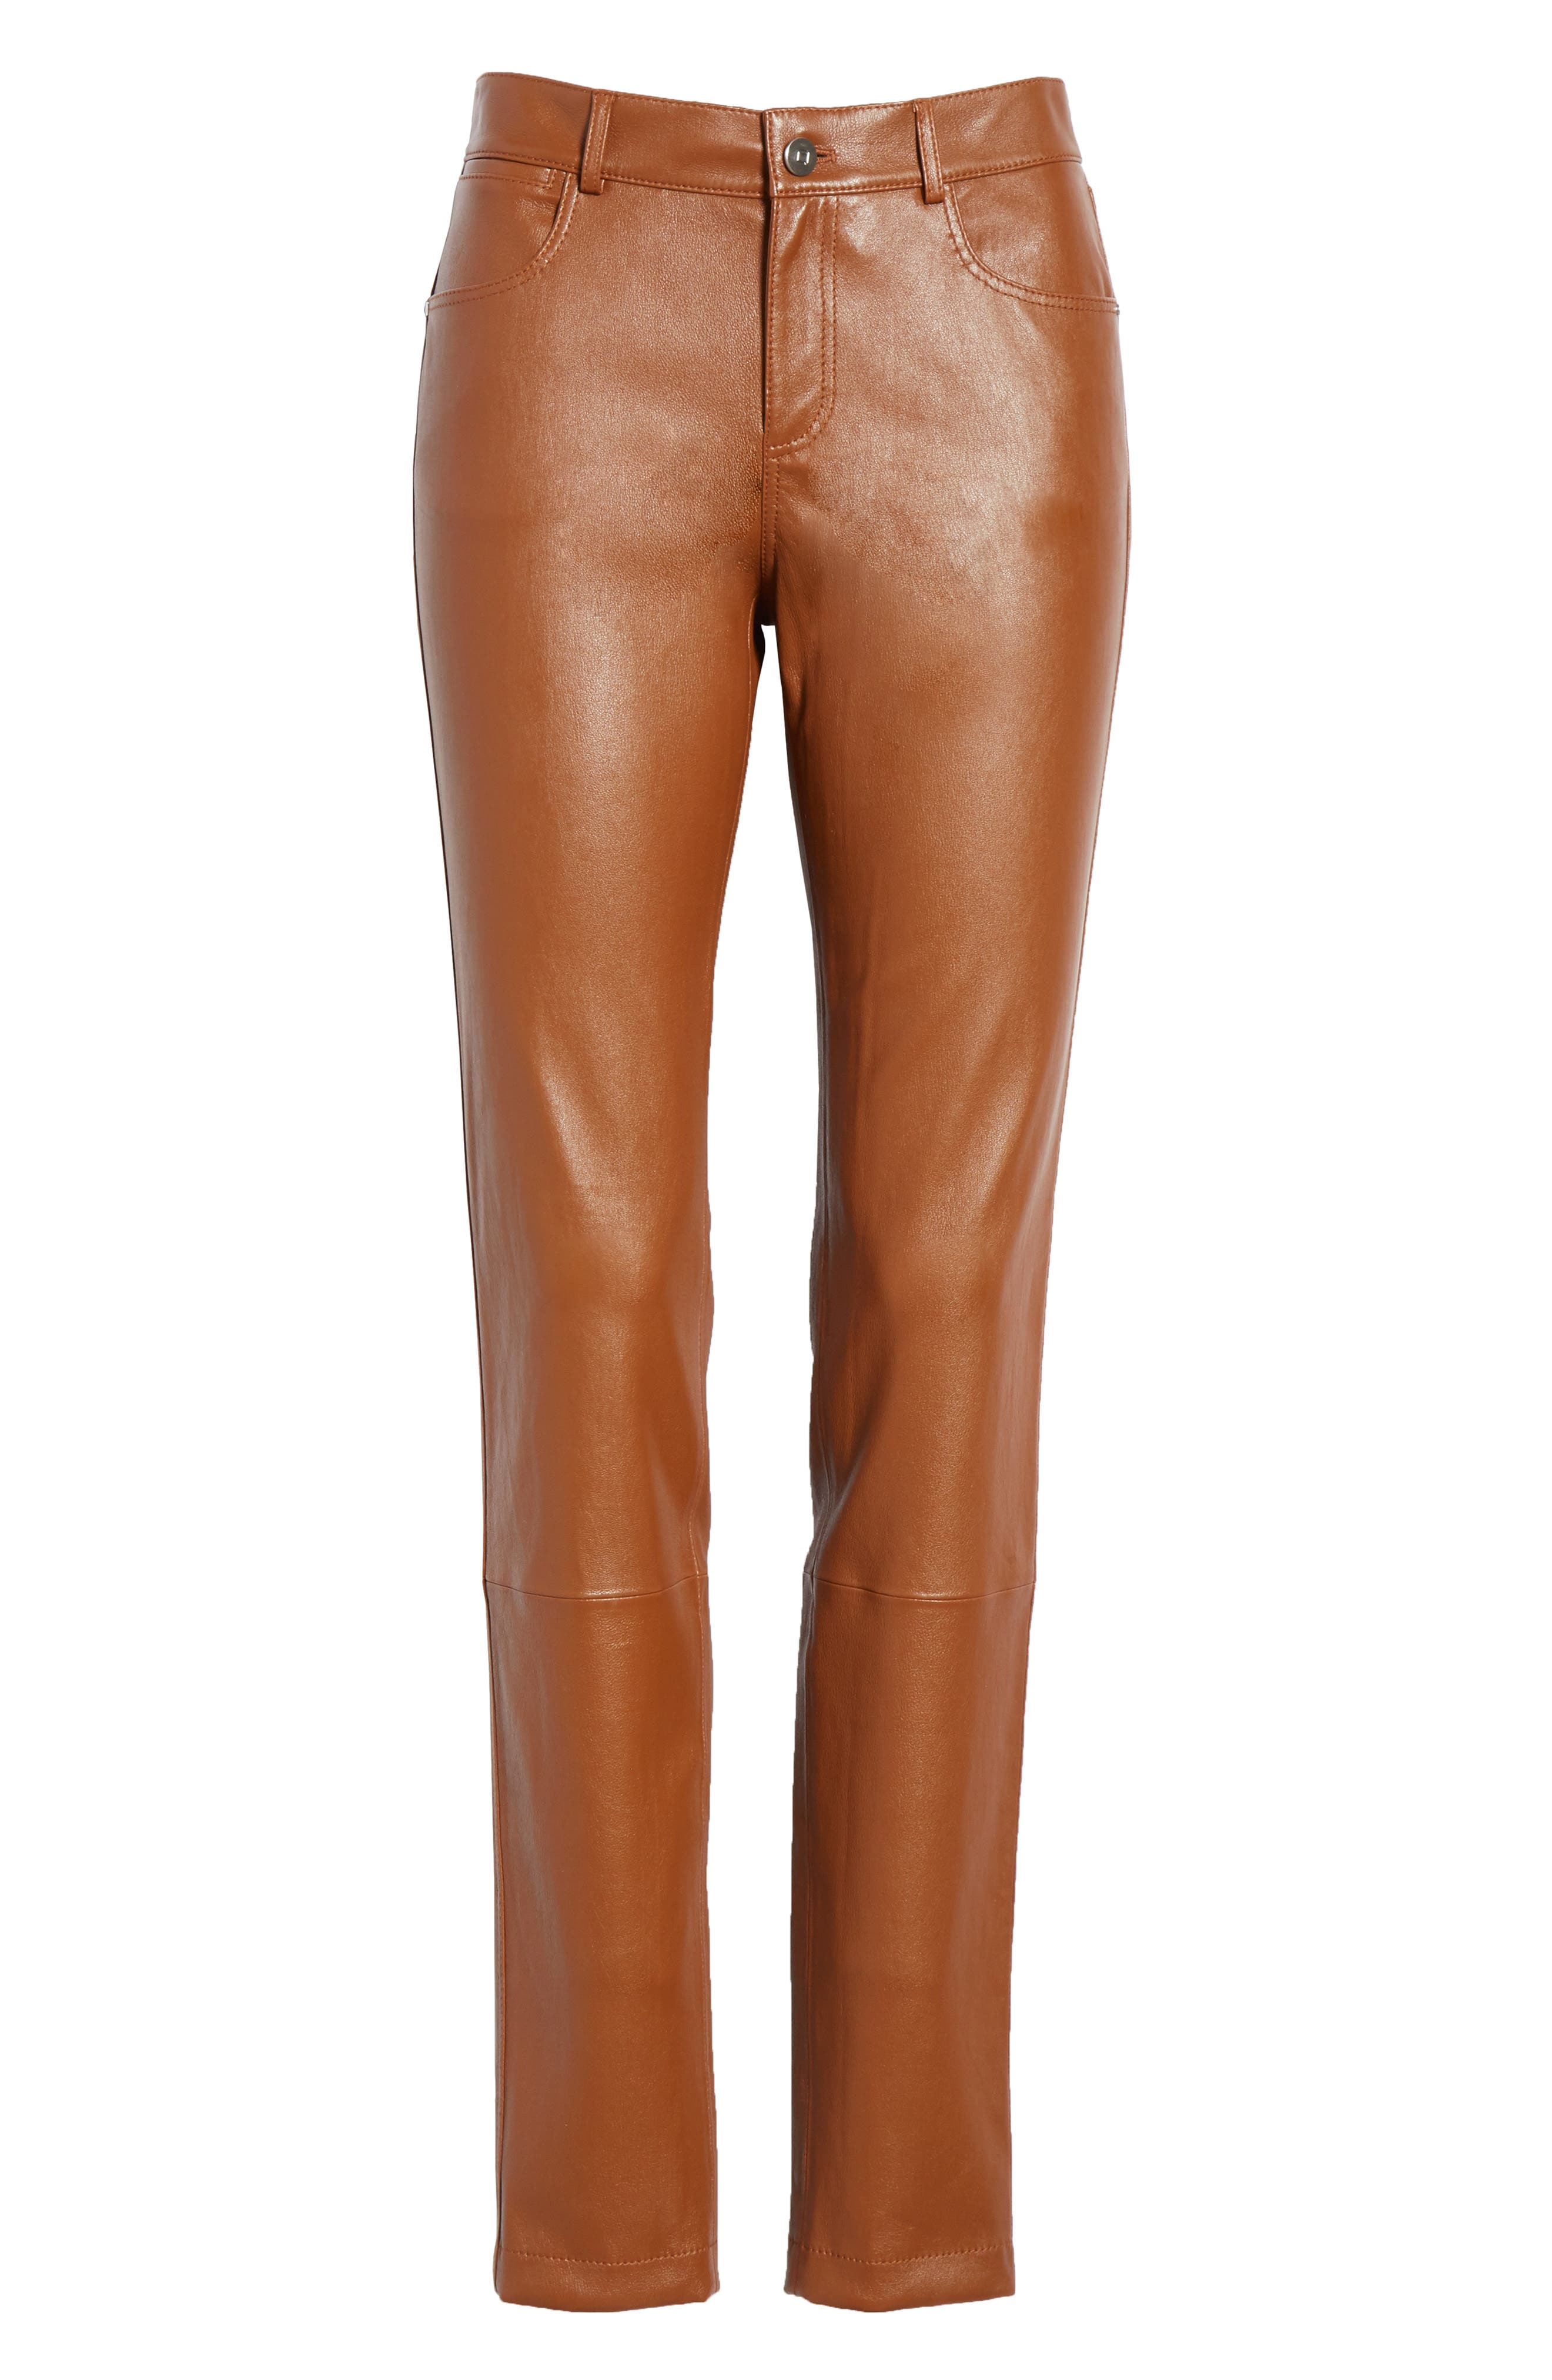 Mercer Nappa Leather Pants,                             Alternate thumbnail 6, color,                             VICUNA